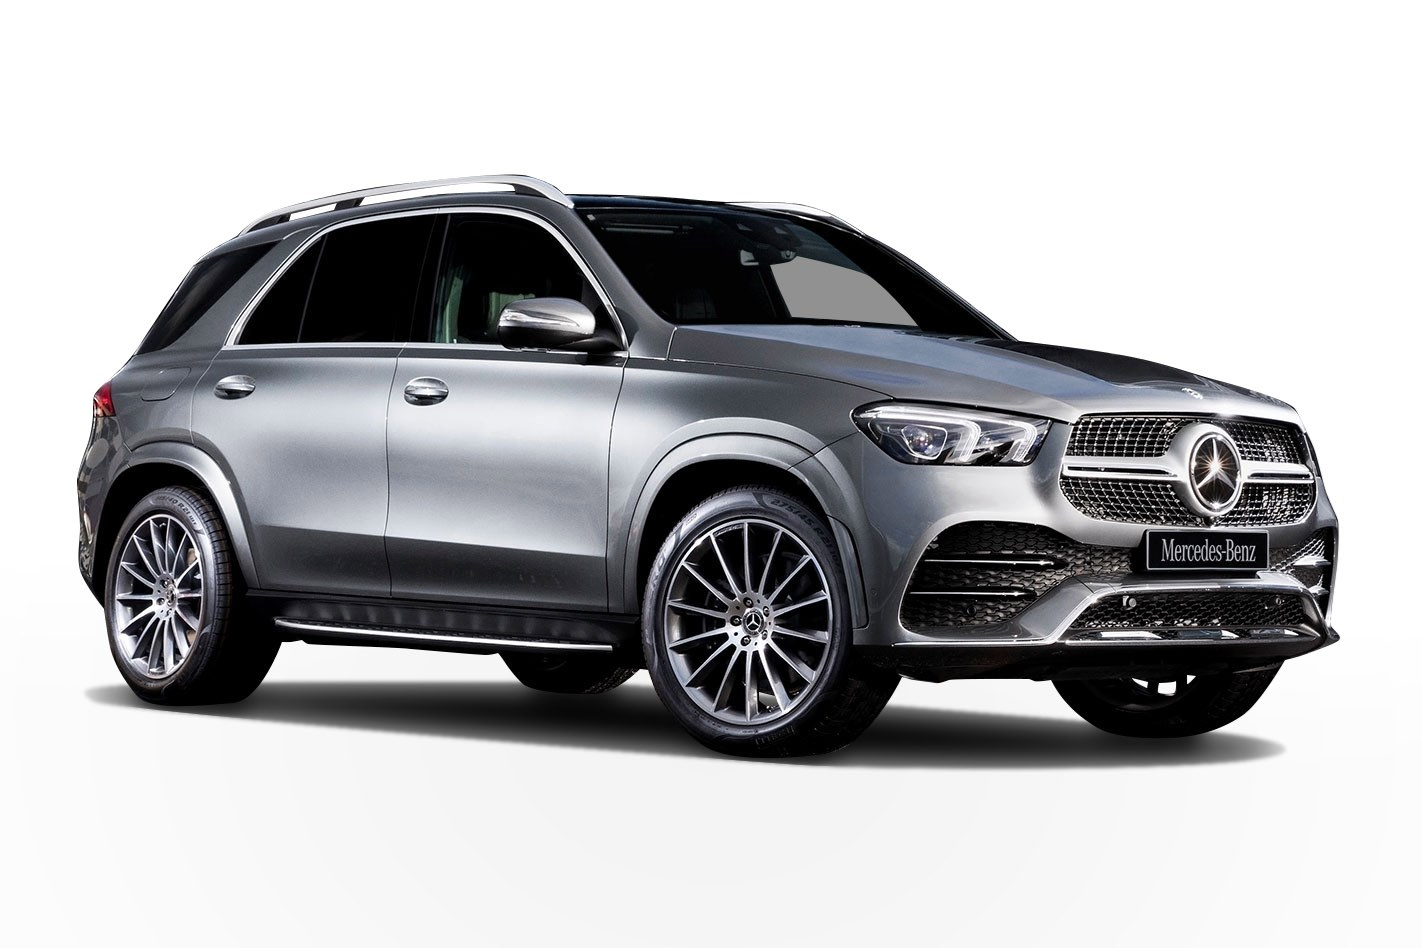 2020 Mercedes Benz Gle Gle300 D 2 0l 4cyl Diesel Turbocharged Automatic Suv